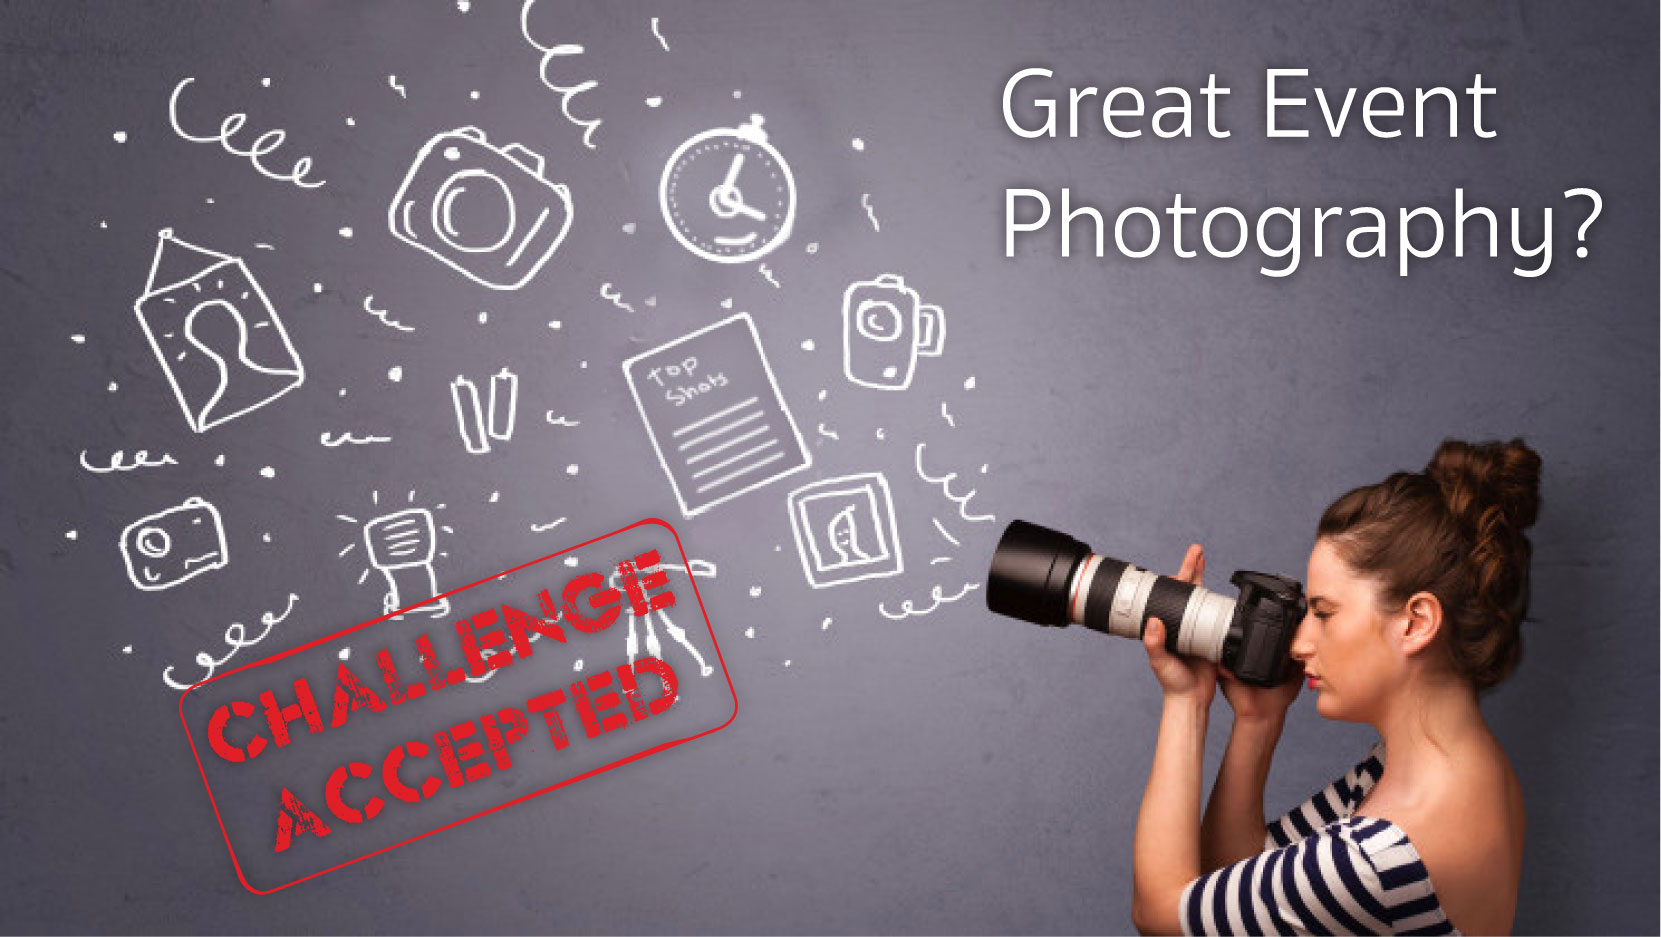 Great Event Photography? Challenge Accepted